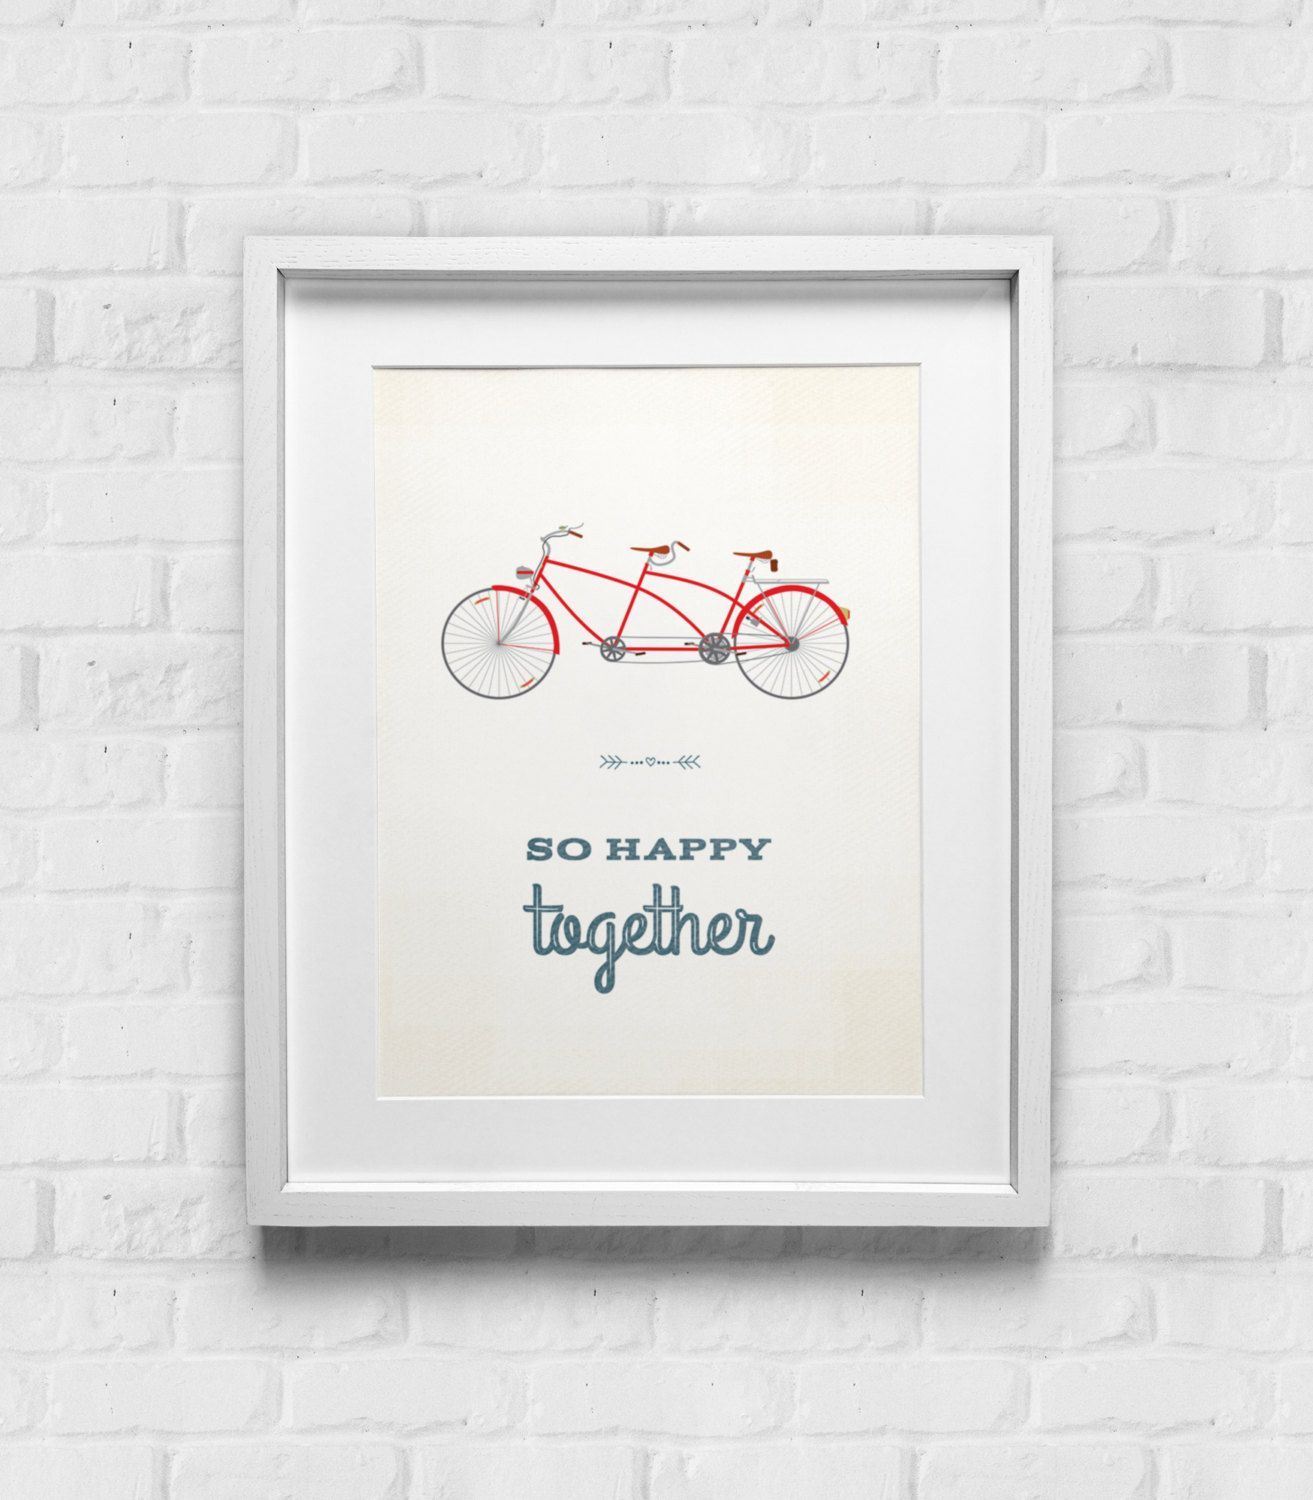 Couples Wall Art So Happy Together Bike Print, Home Decor Typographic Tandem Bicycle Poster, Vintage Bicycle, Retro Bike Art, Wall Decor Art by GulfRoad on Etsy